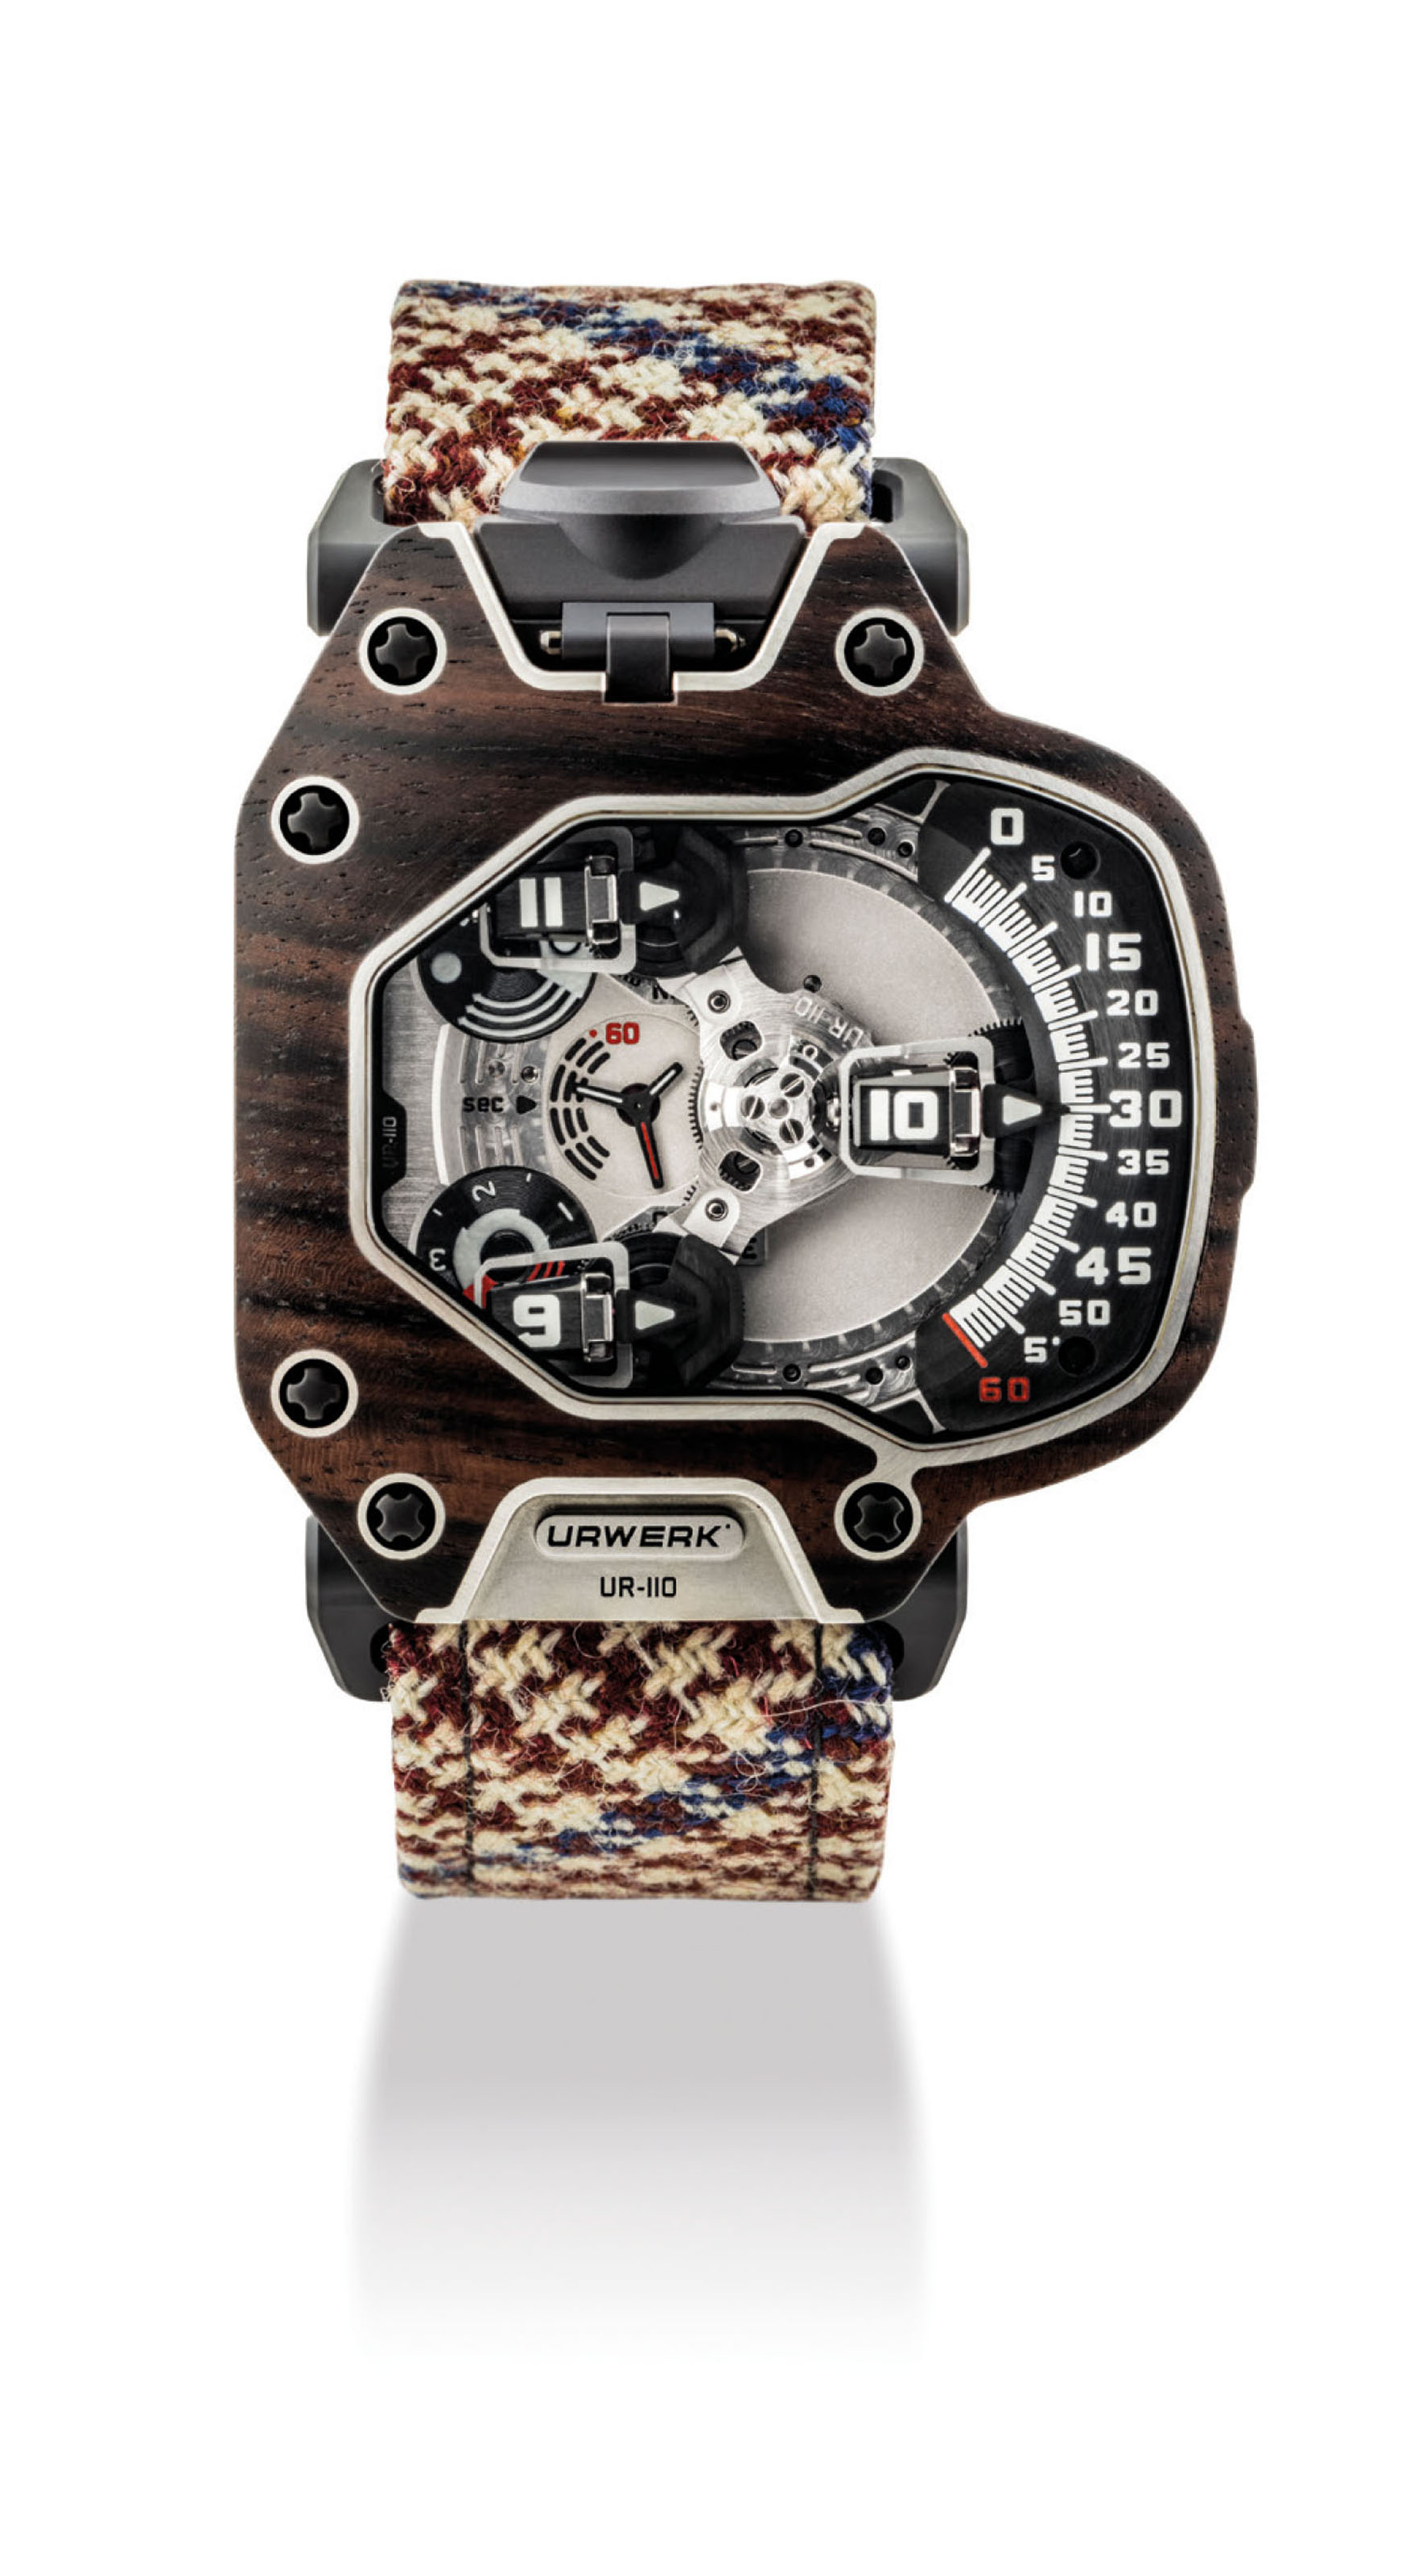 Urwerk. An extremely rare titanium and Macassar ebony limited-edition automatic wristwatch with three-dimensional satellite hour display, daynight and 'oil-change' indications, ref. UR-110, Eastwood Macassar Ebony model, limited edition of five pieces, c. 2015. Sold for HK$750,000 on 29 May 2017 at Christie's in Hong Kong